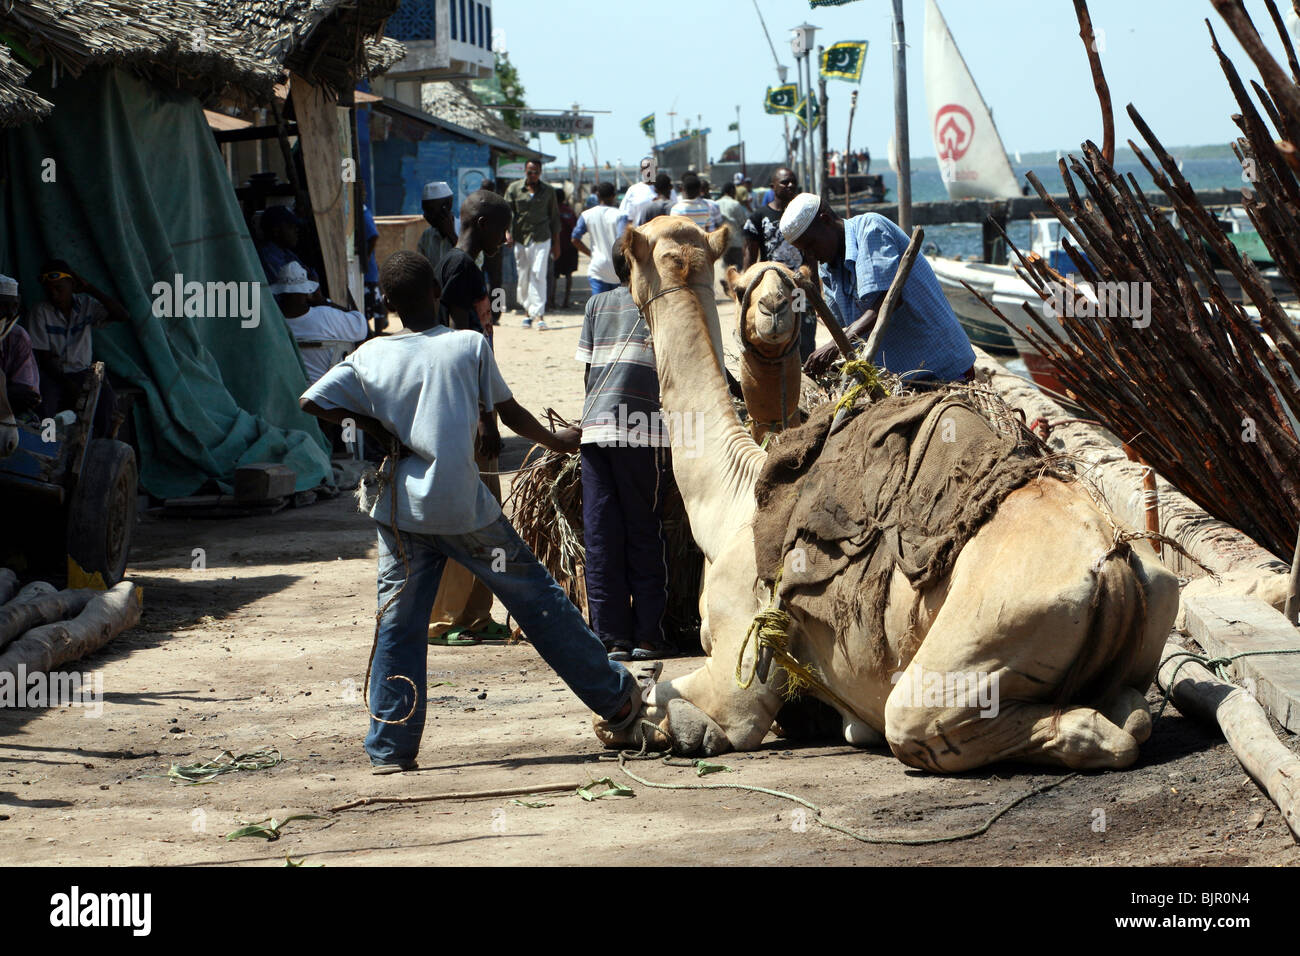 Camels resting in a narrow street In Lamu Stock Photo